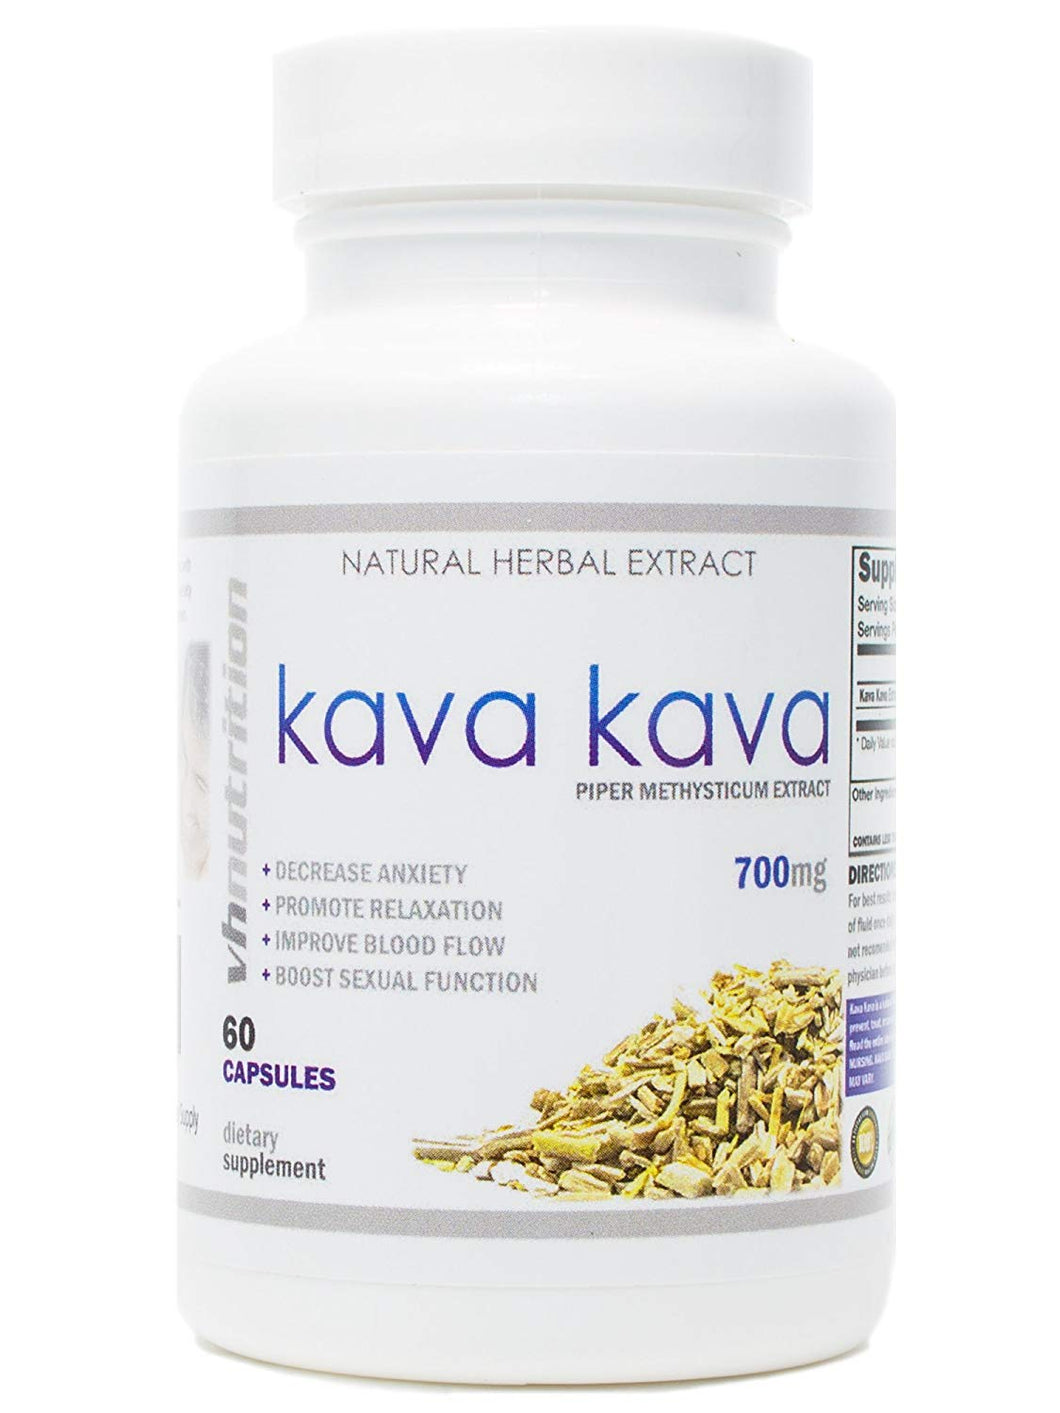 Kava Kava | 700mg Capsules | Piper Methysticum Extract | 60 Day Supply